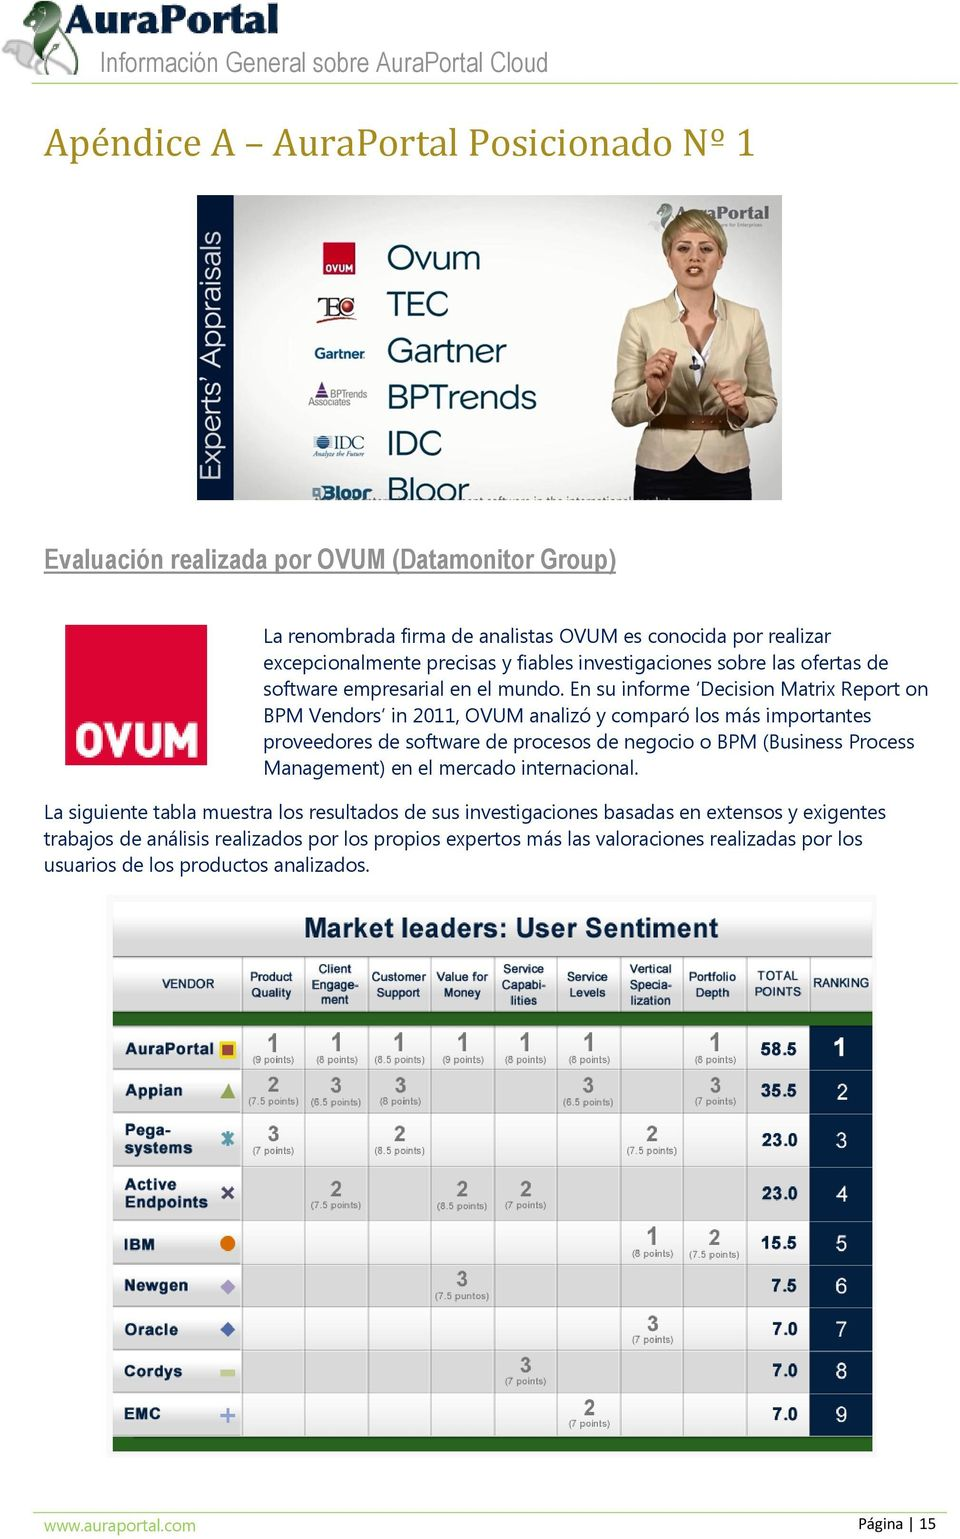 En su informe Decision Matrix Report on BPM Vendors in 2011, OVUM analizó y comparó los más importantes proveedores de software de procesos de negocio o BPM (Business Process